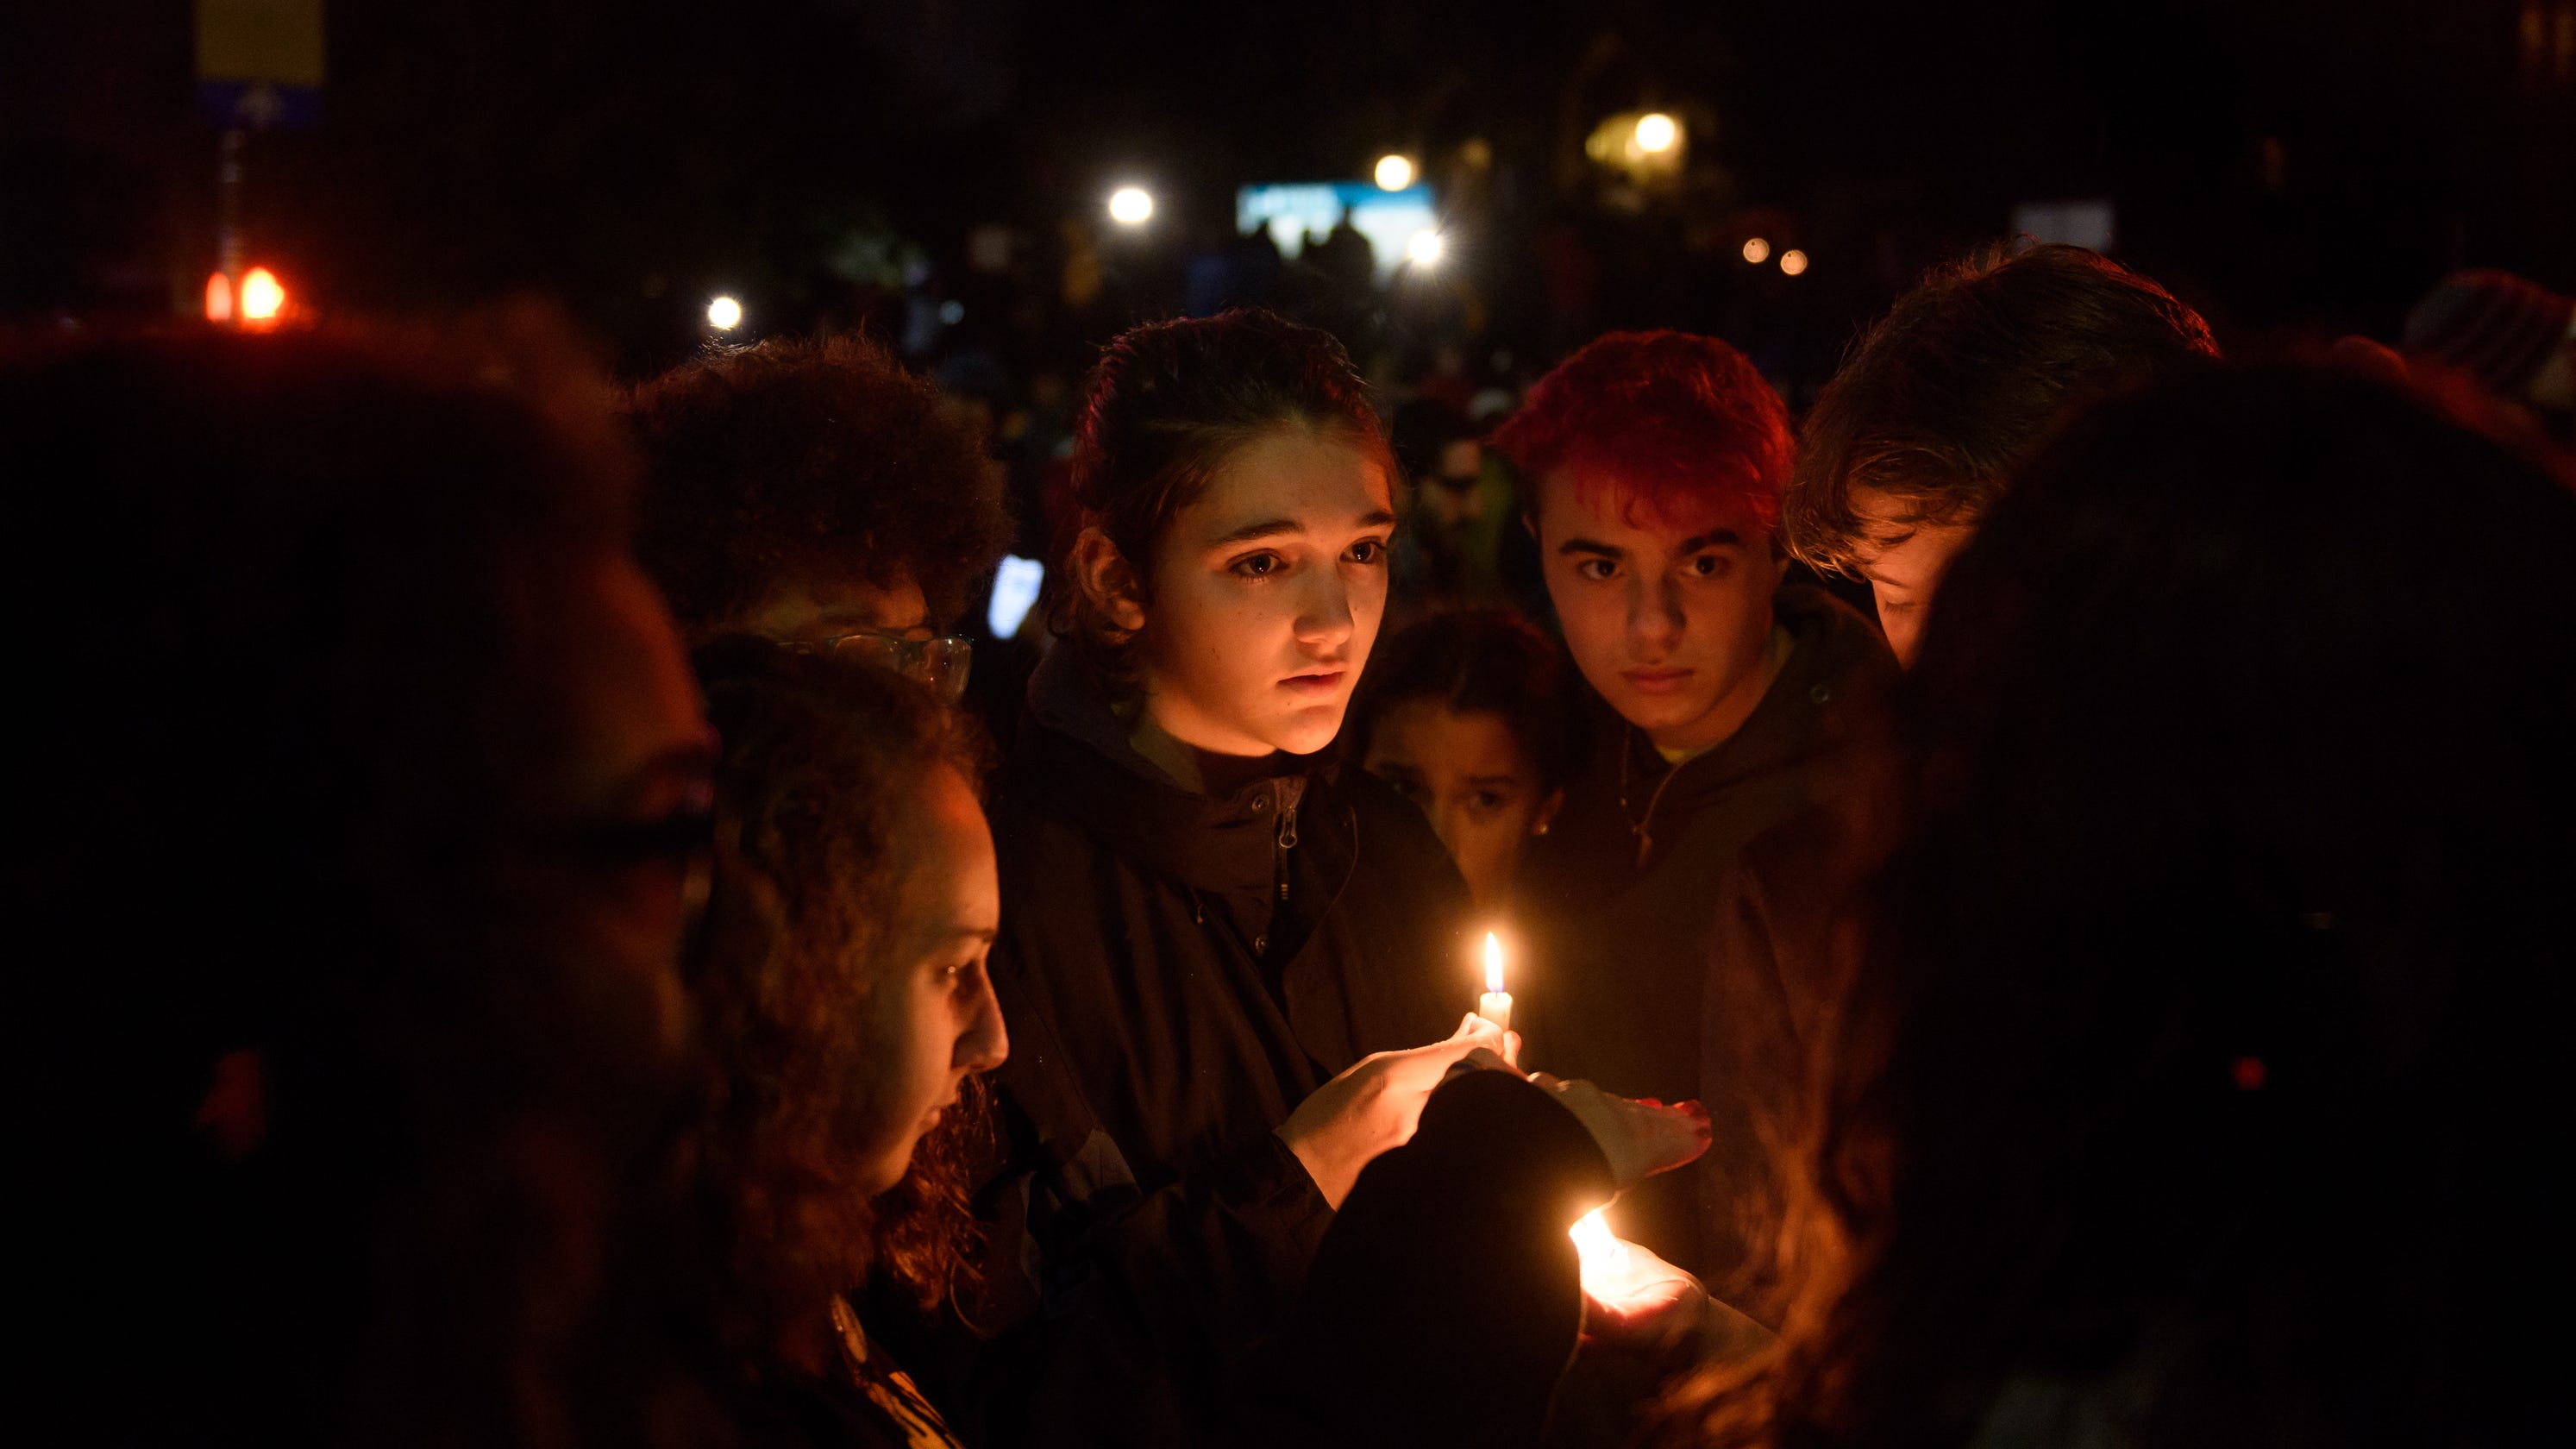 Pittsburgh shooting: Can we talk about hate if we can't talk